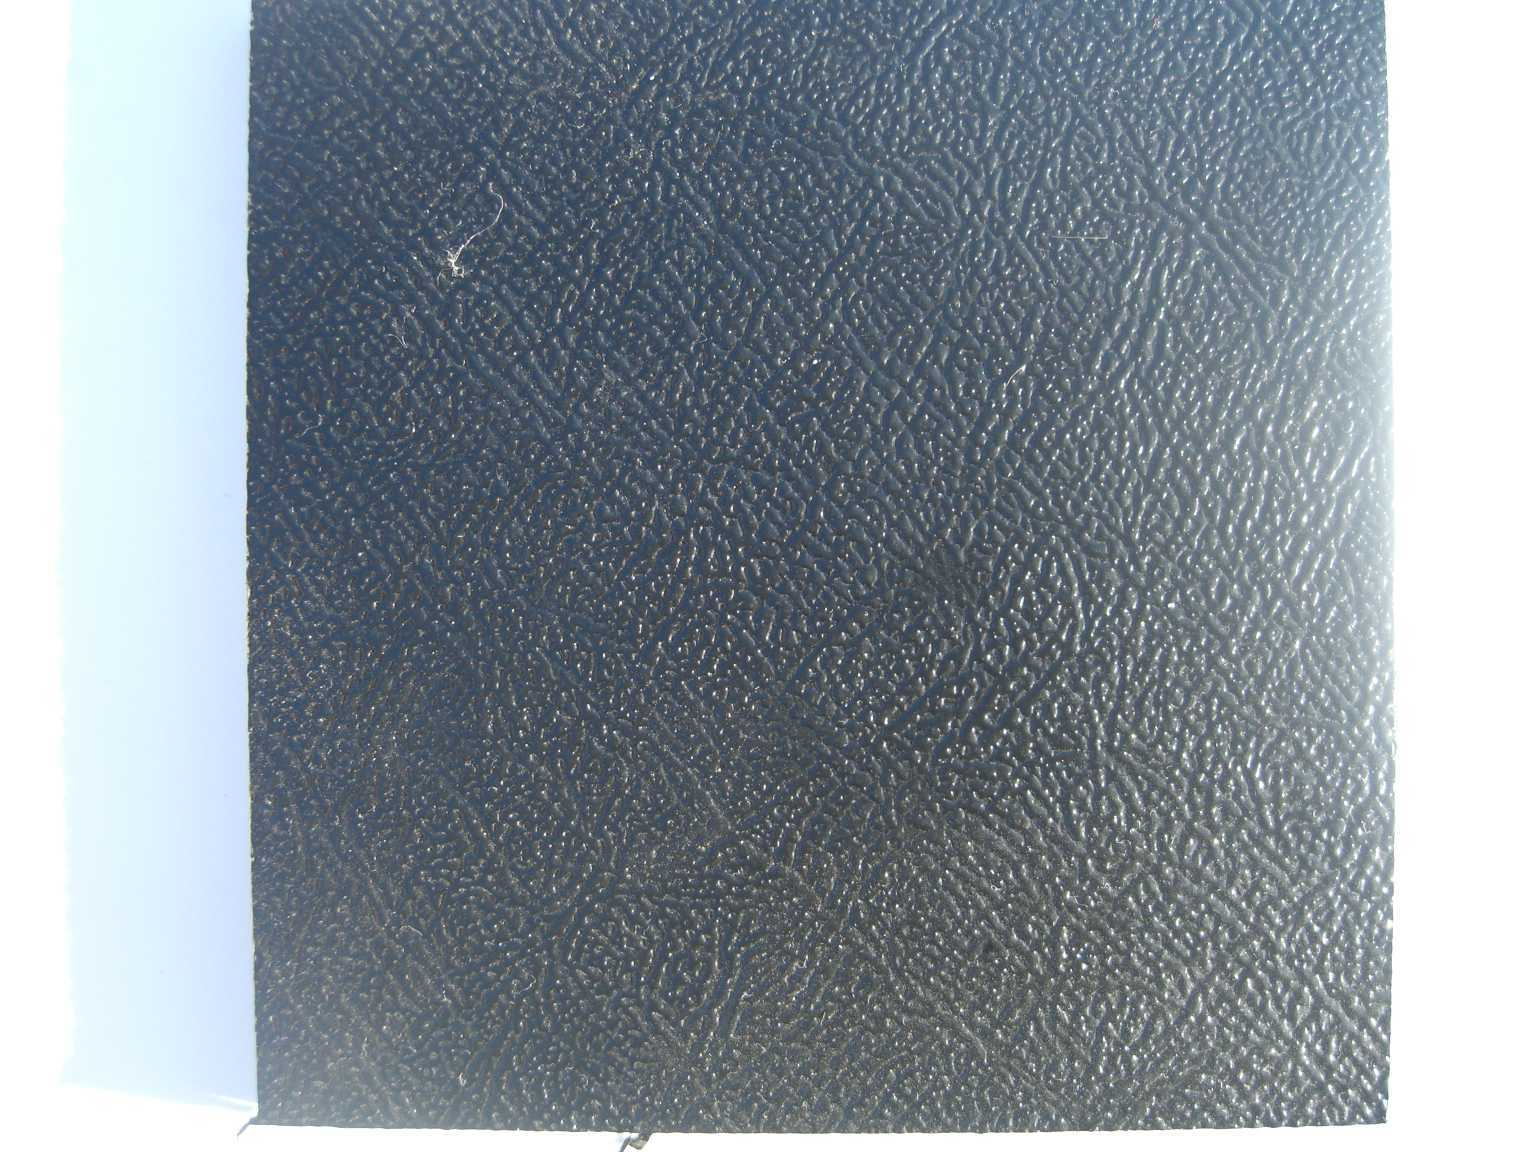 PPC LEATHER GRAIN PROPYLEX EXTRUDED SHEET BLACK 2.44m 1.22m 6 mm